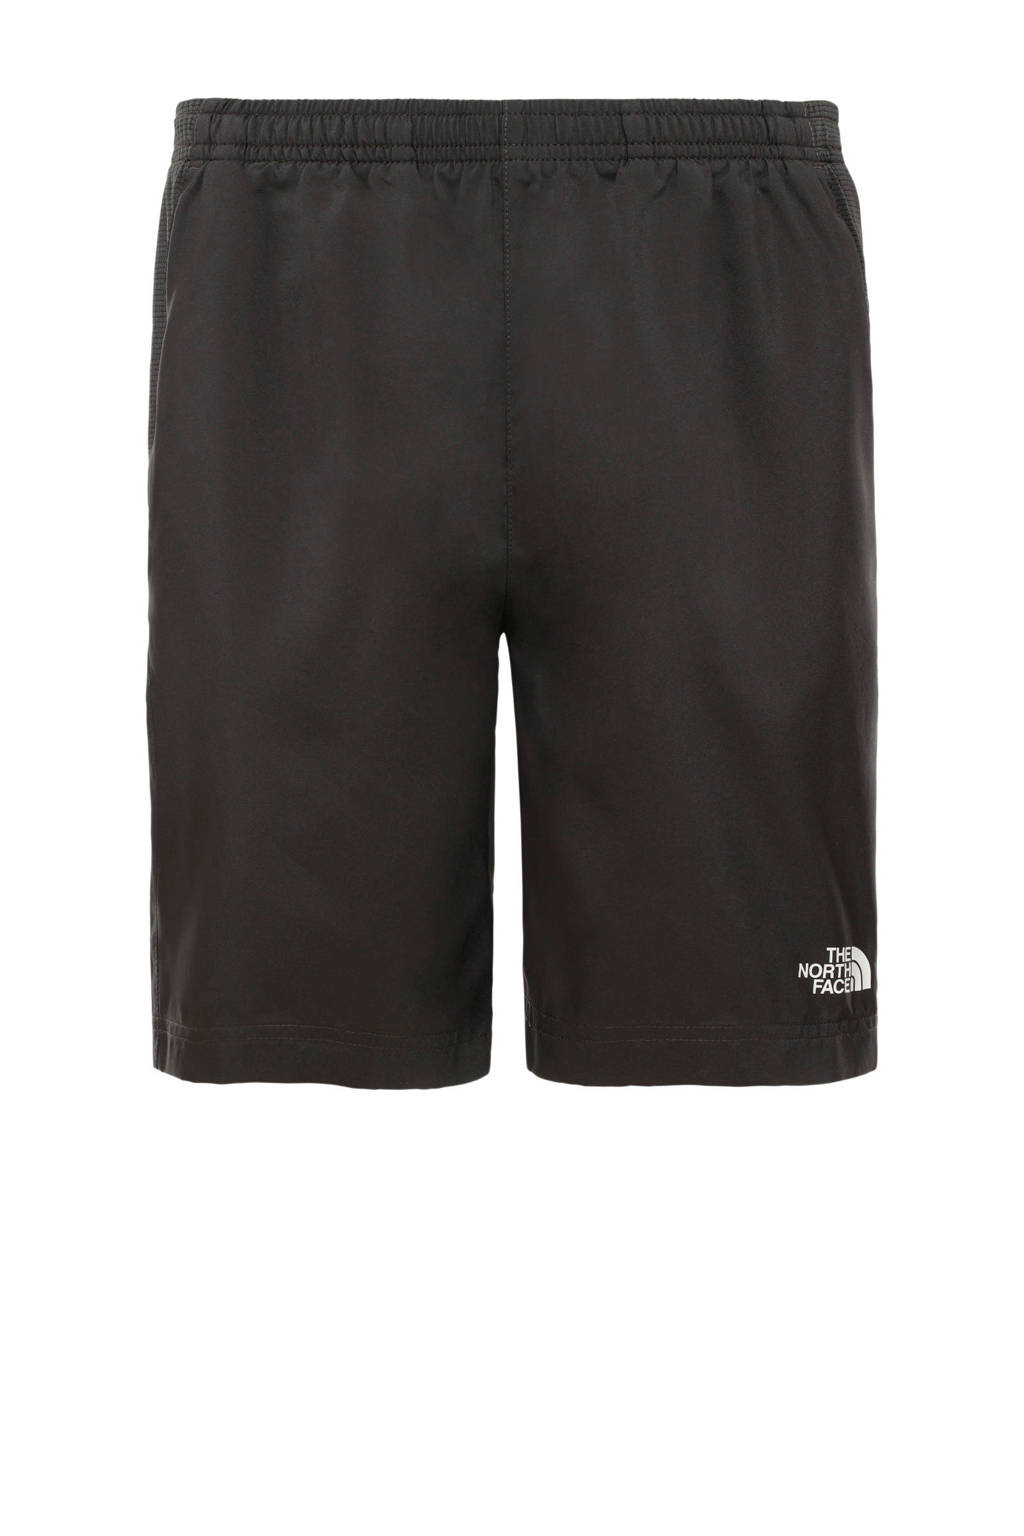 The North Face sweatshort antraciet, Grijs